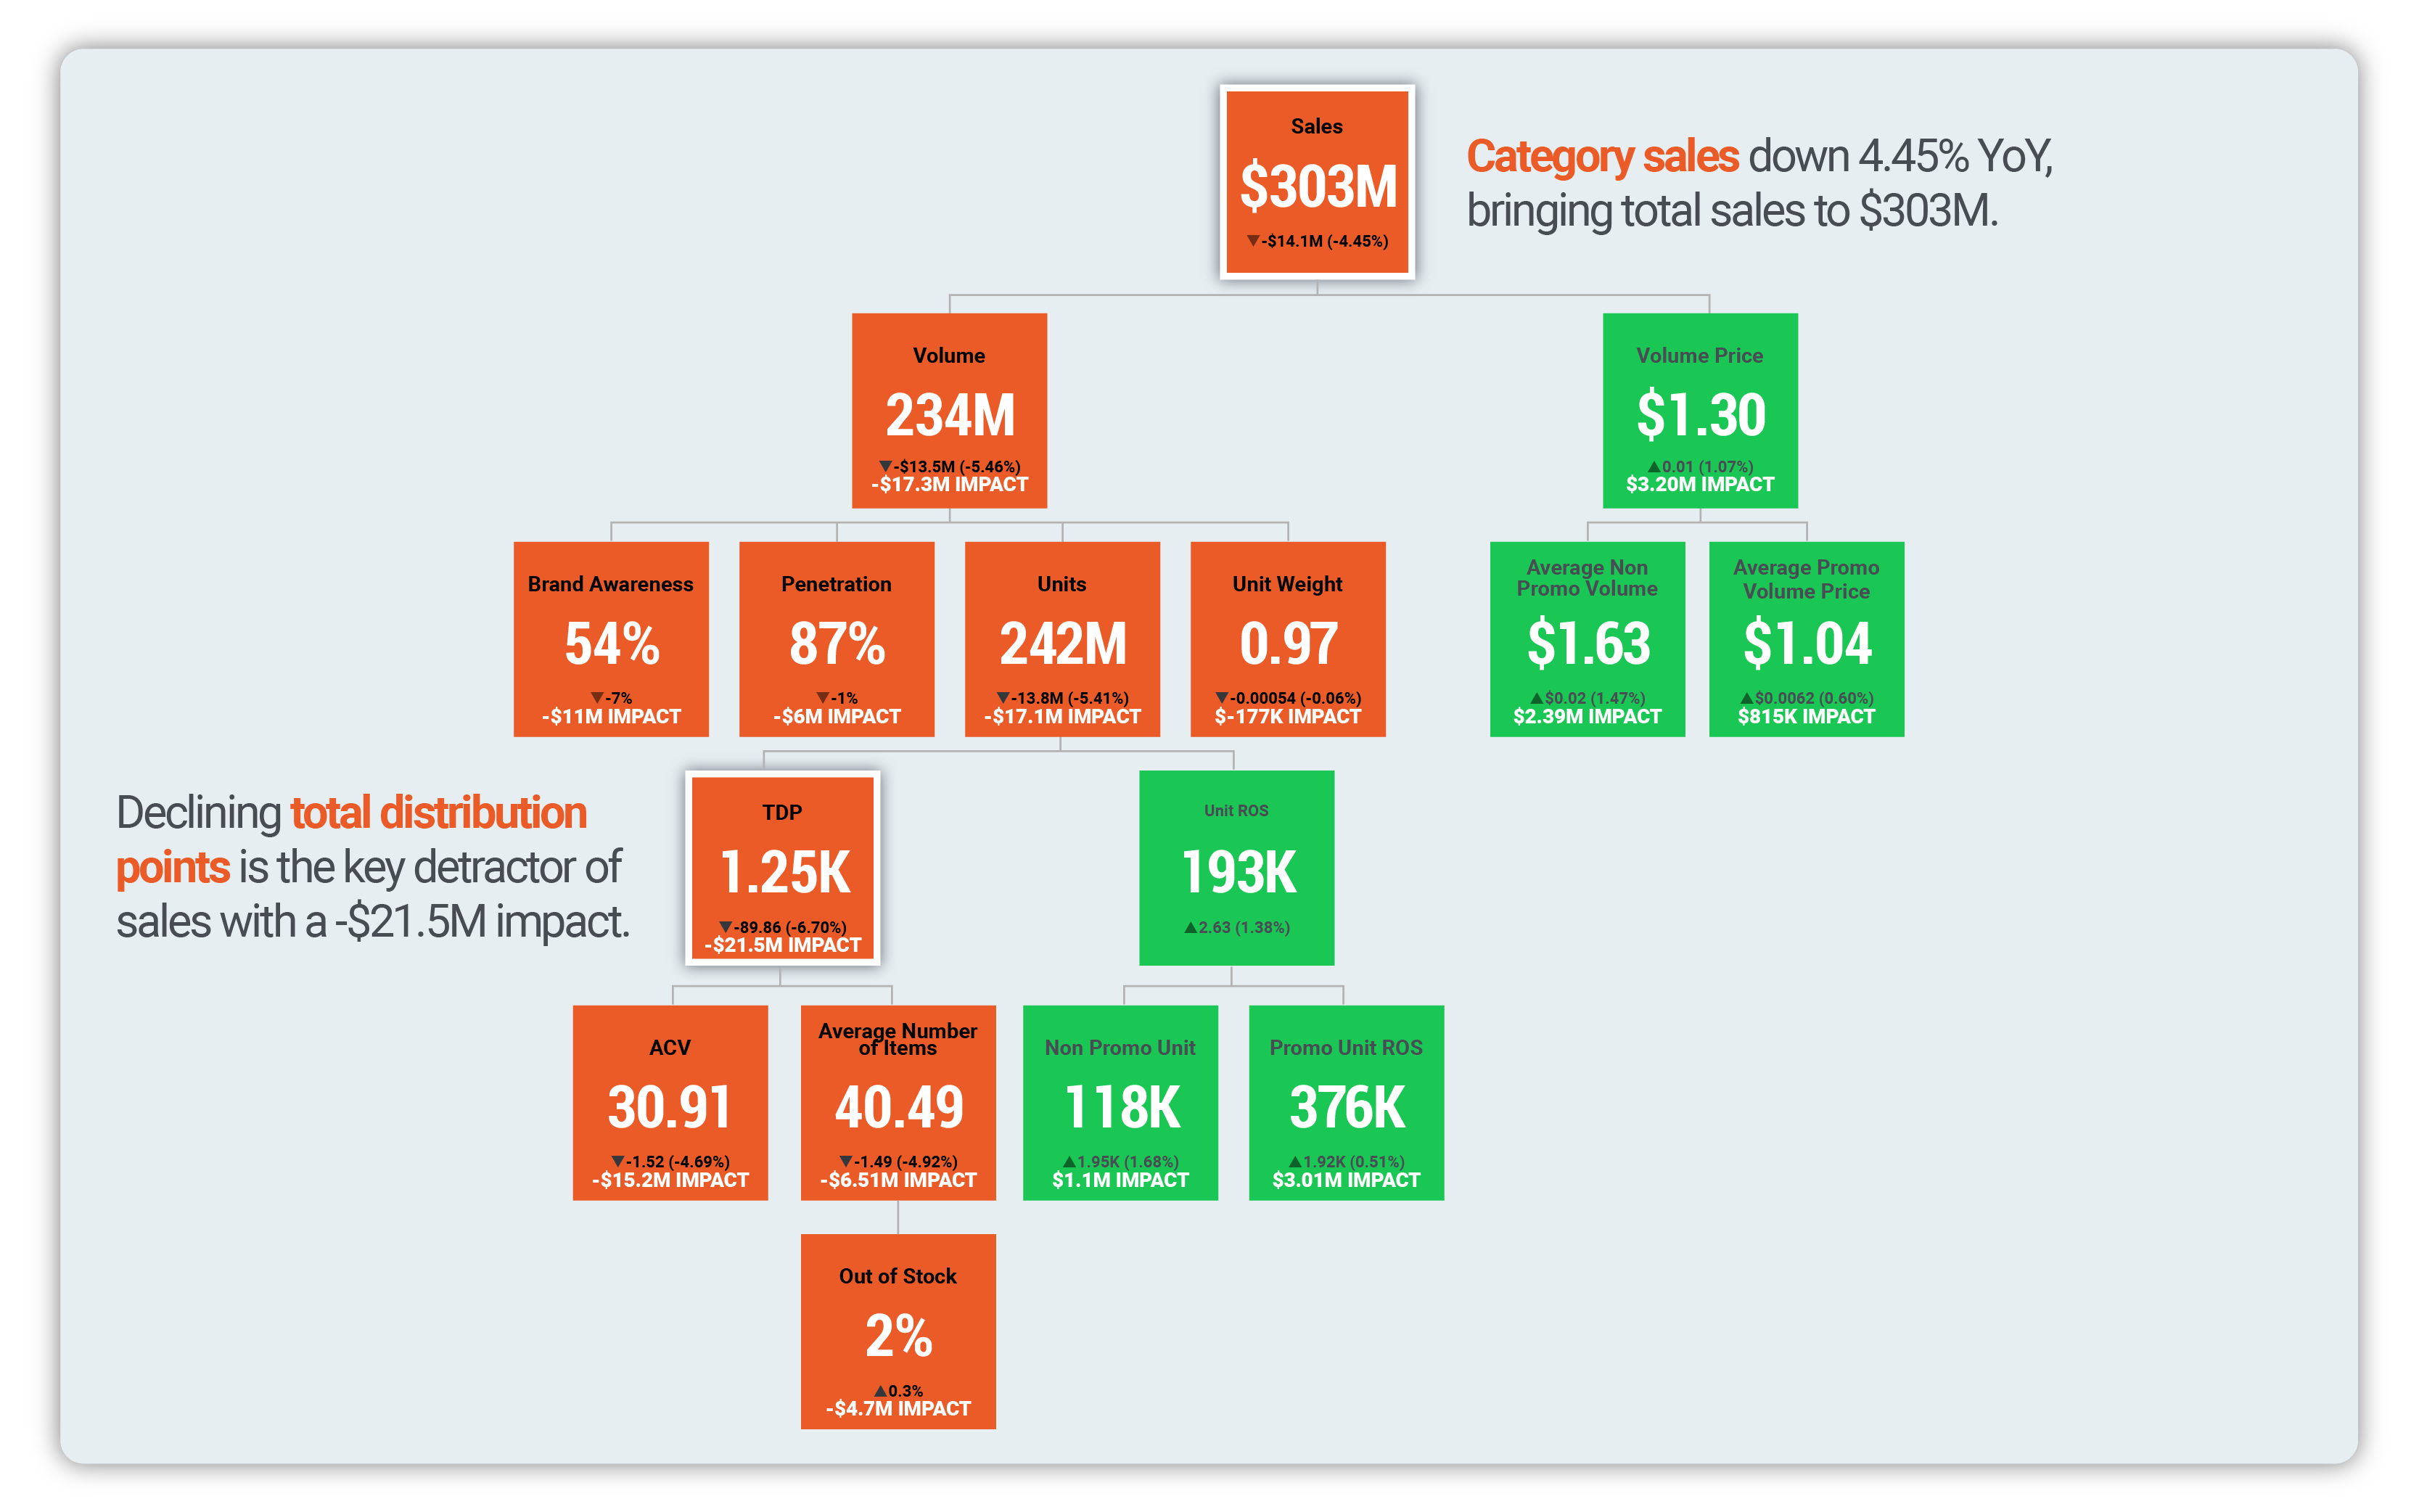 Category analysis KPI tree shows which metric most impact sales